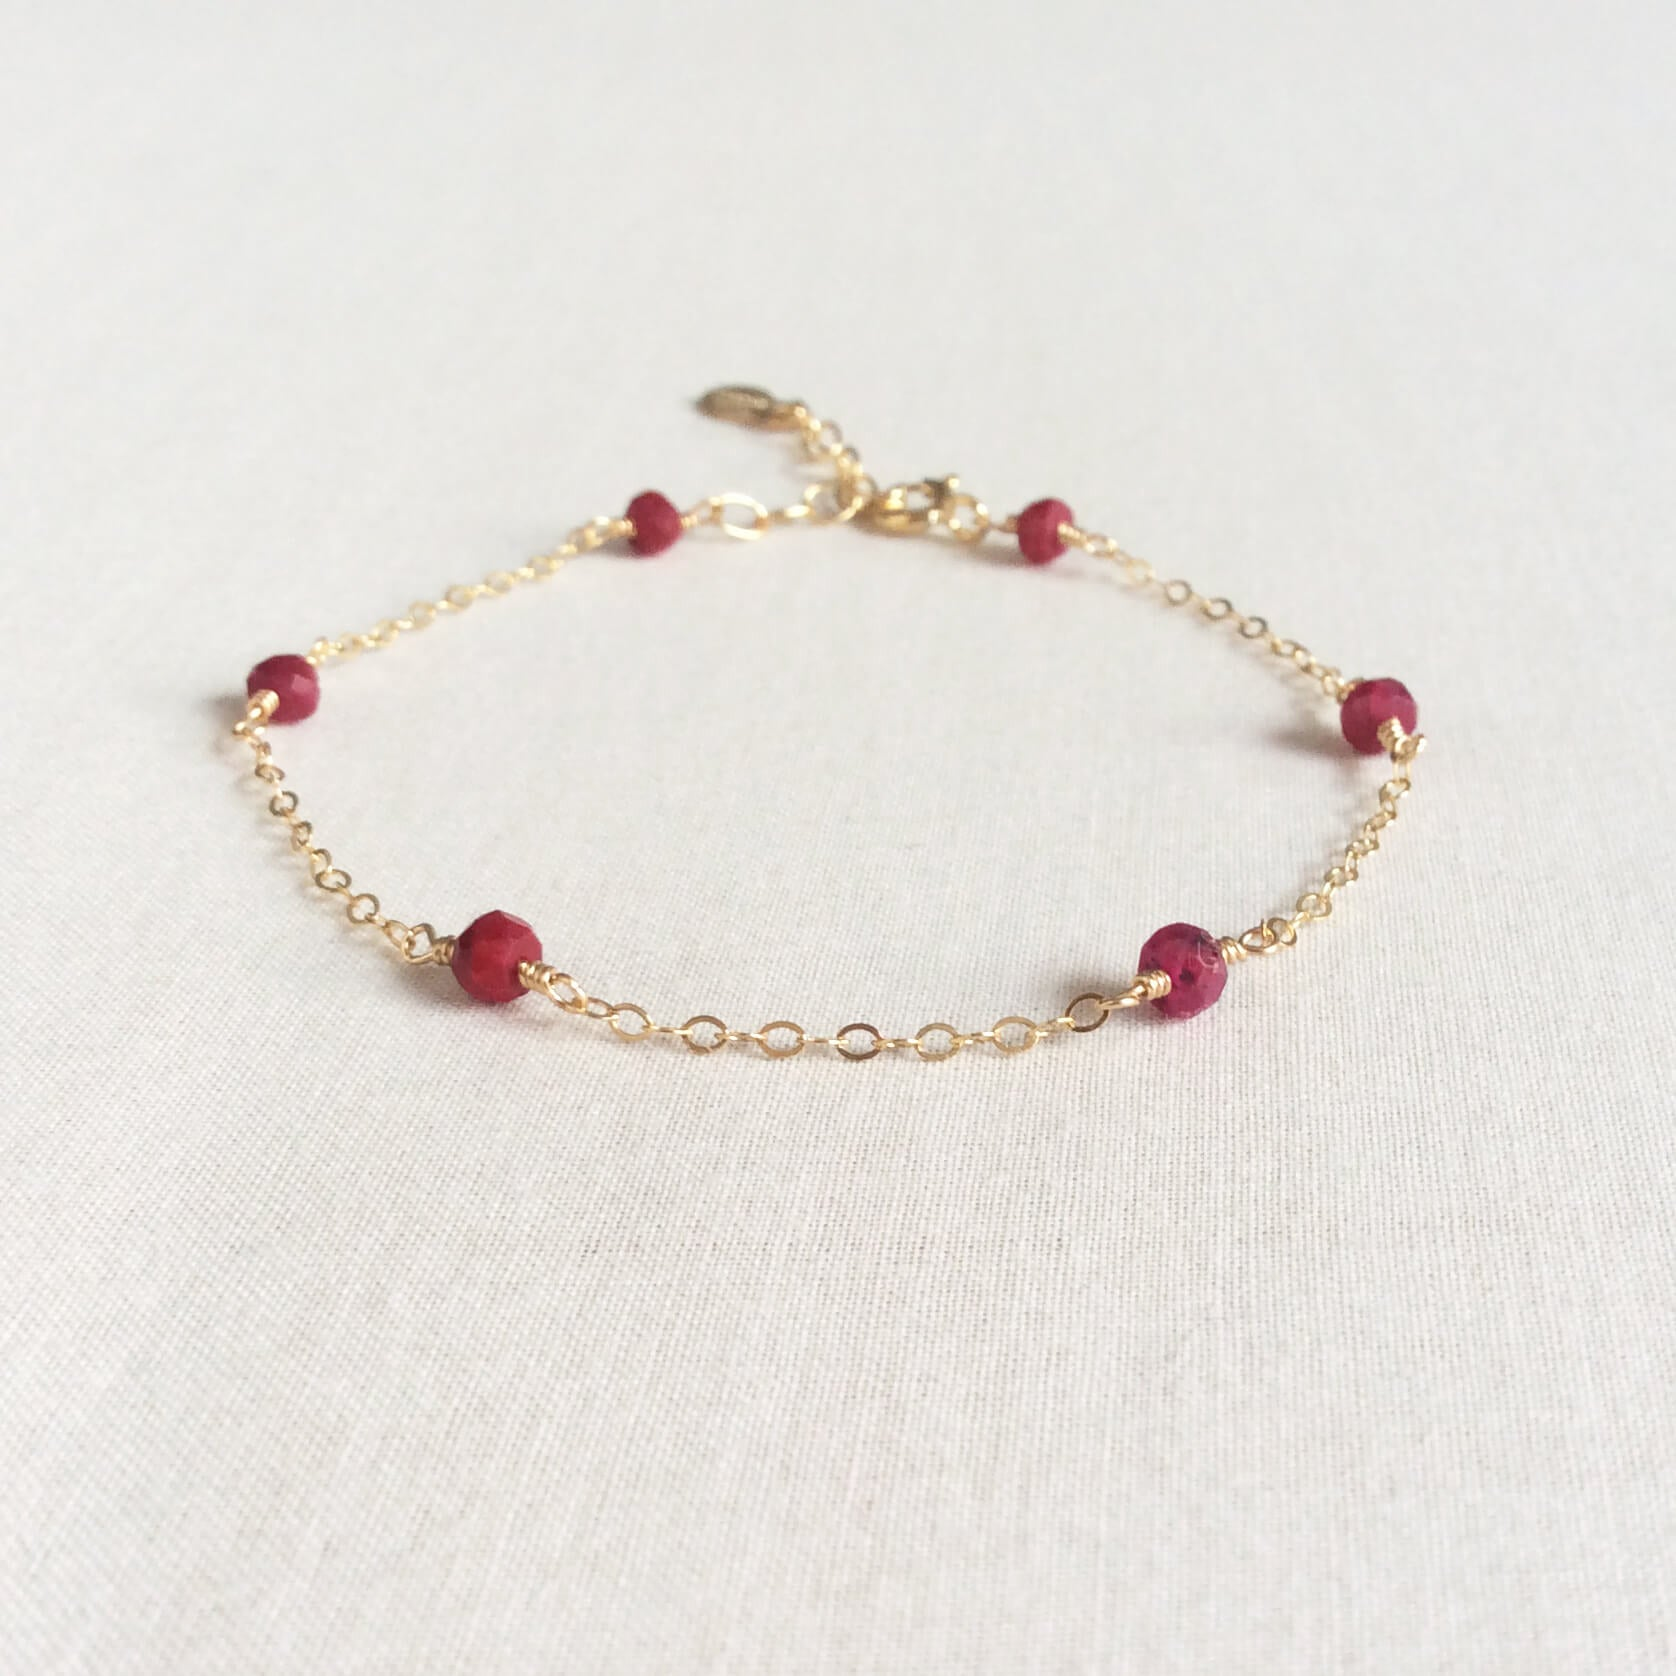 14k gold ruby bracelet with adjustable chain in 14k or gold filled